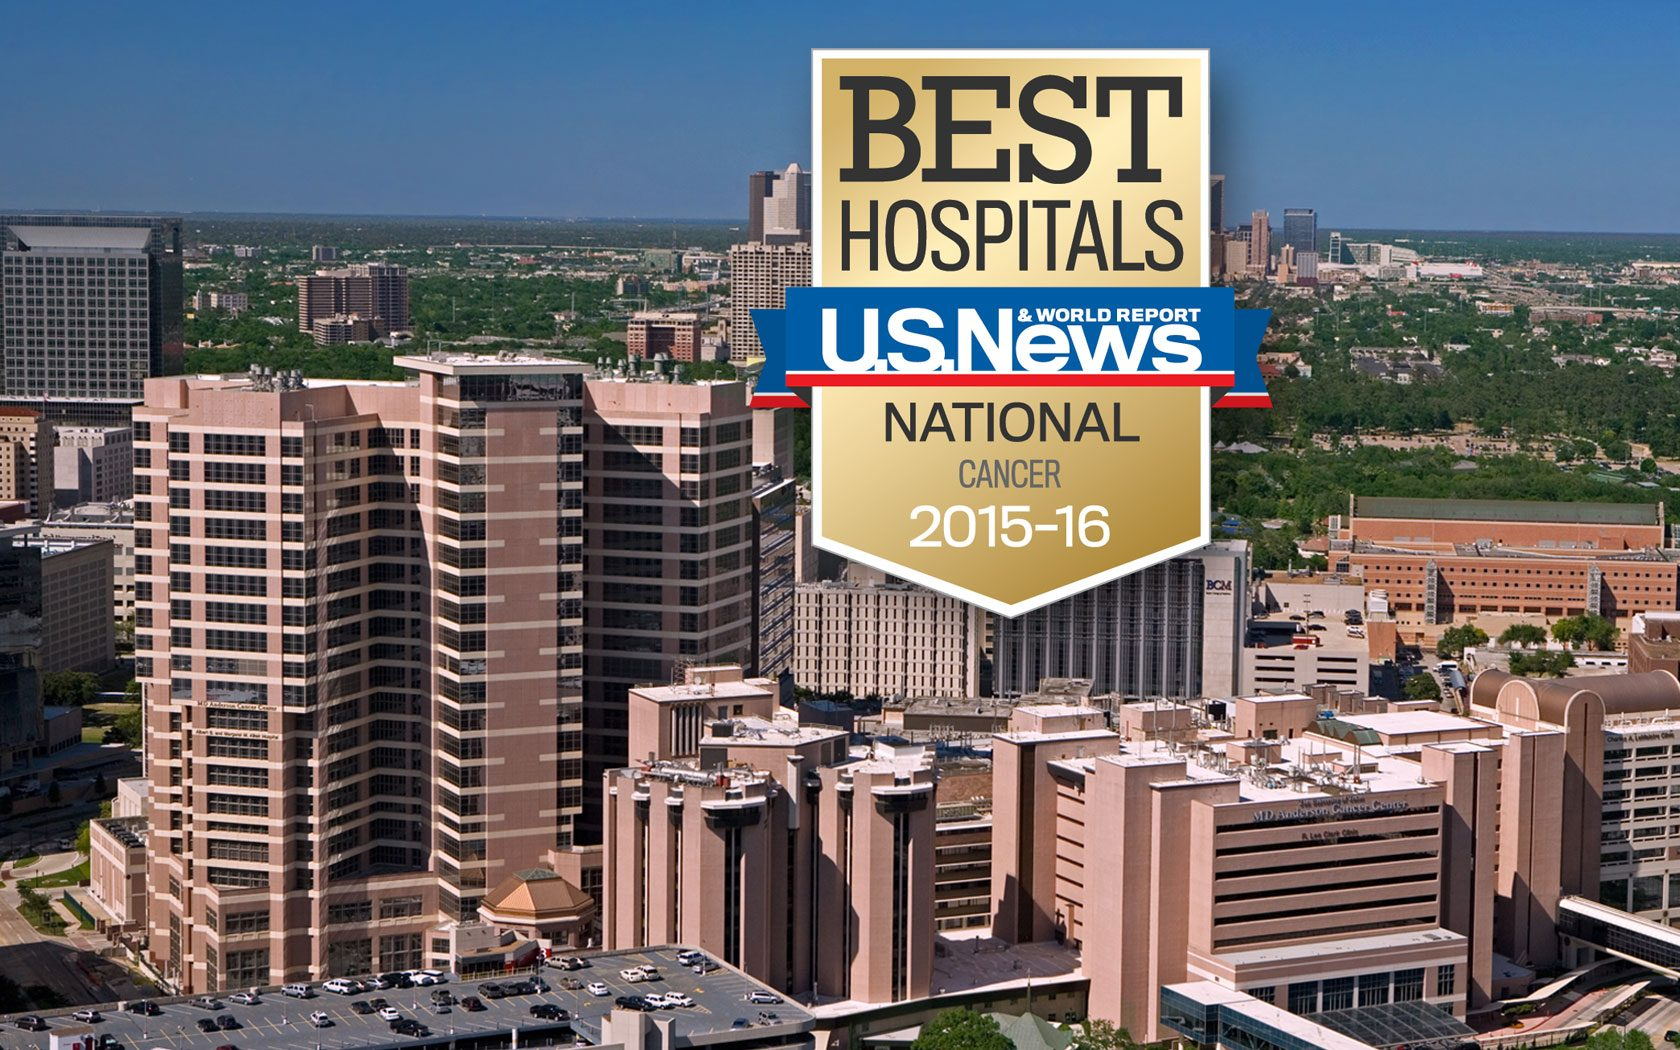 Md anderson named the top cancer hospital